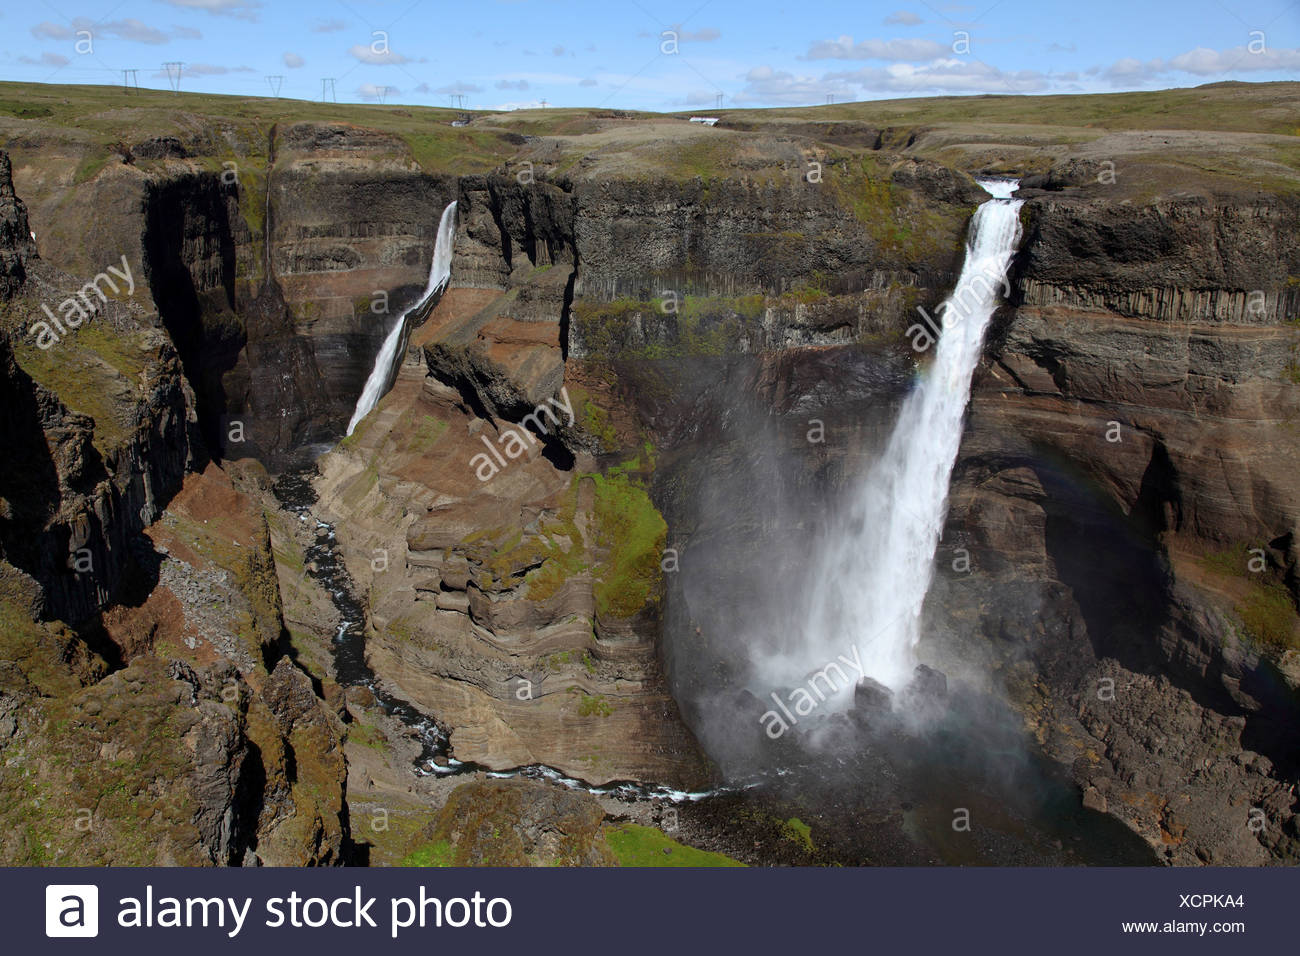 Haifoss waterfall, Iceland - Stock Image